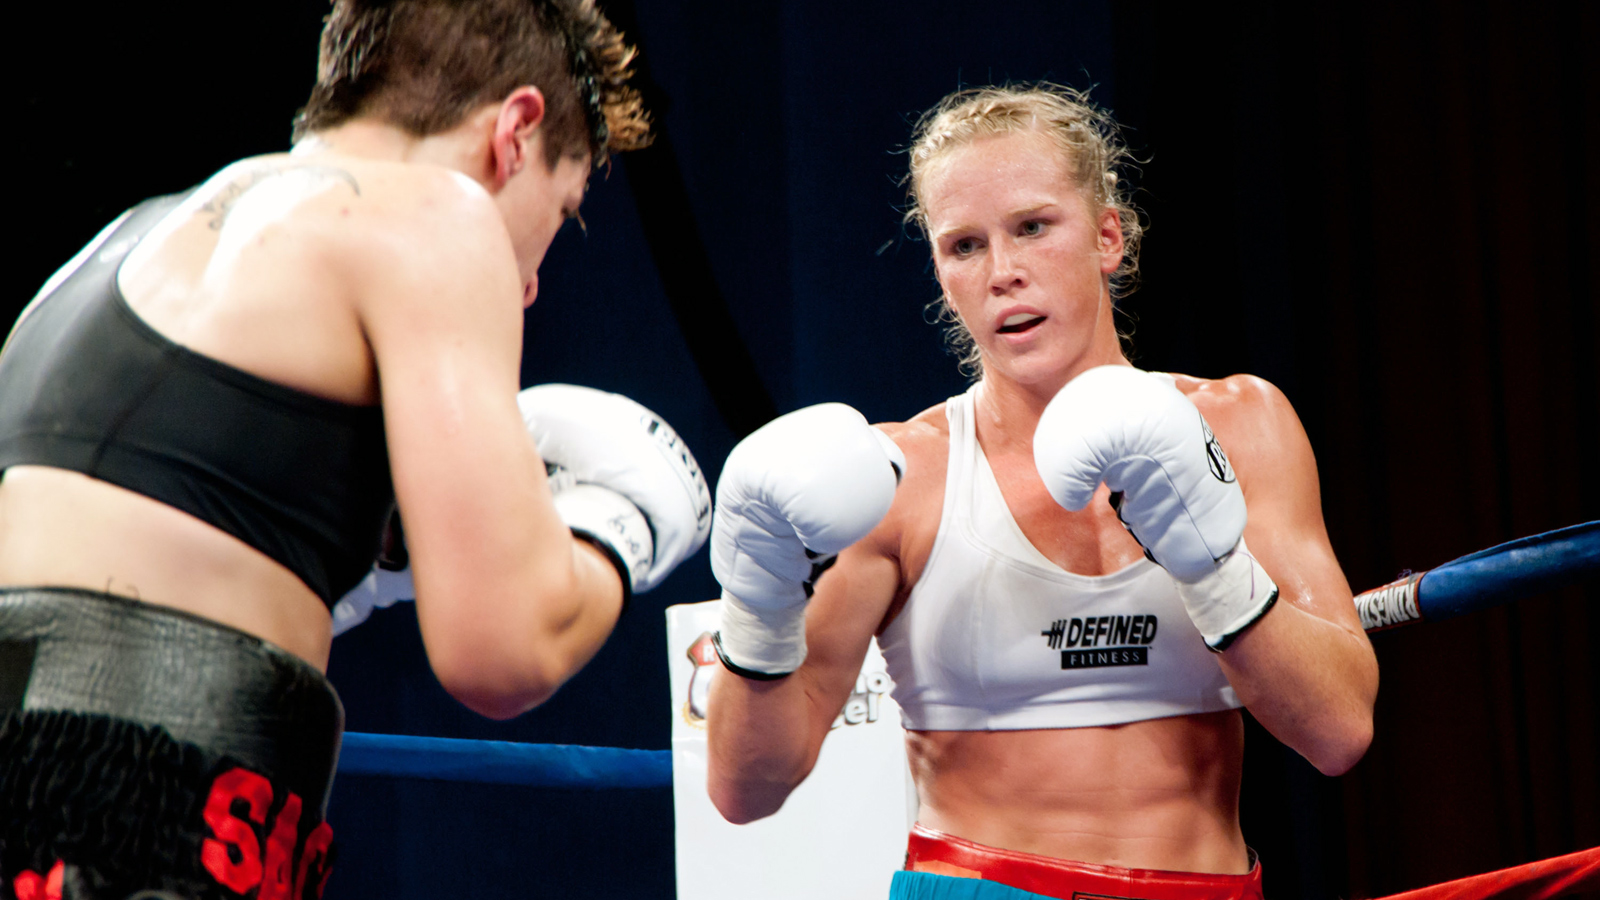 Former UFC Champion Holly Holm To Join Broadcast Team for Claressa Shields led All-Women's PPV